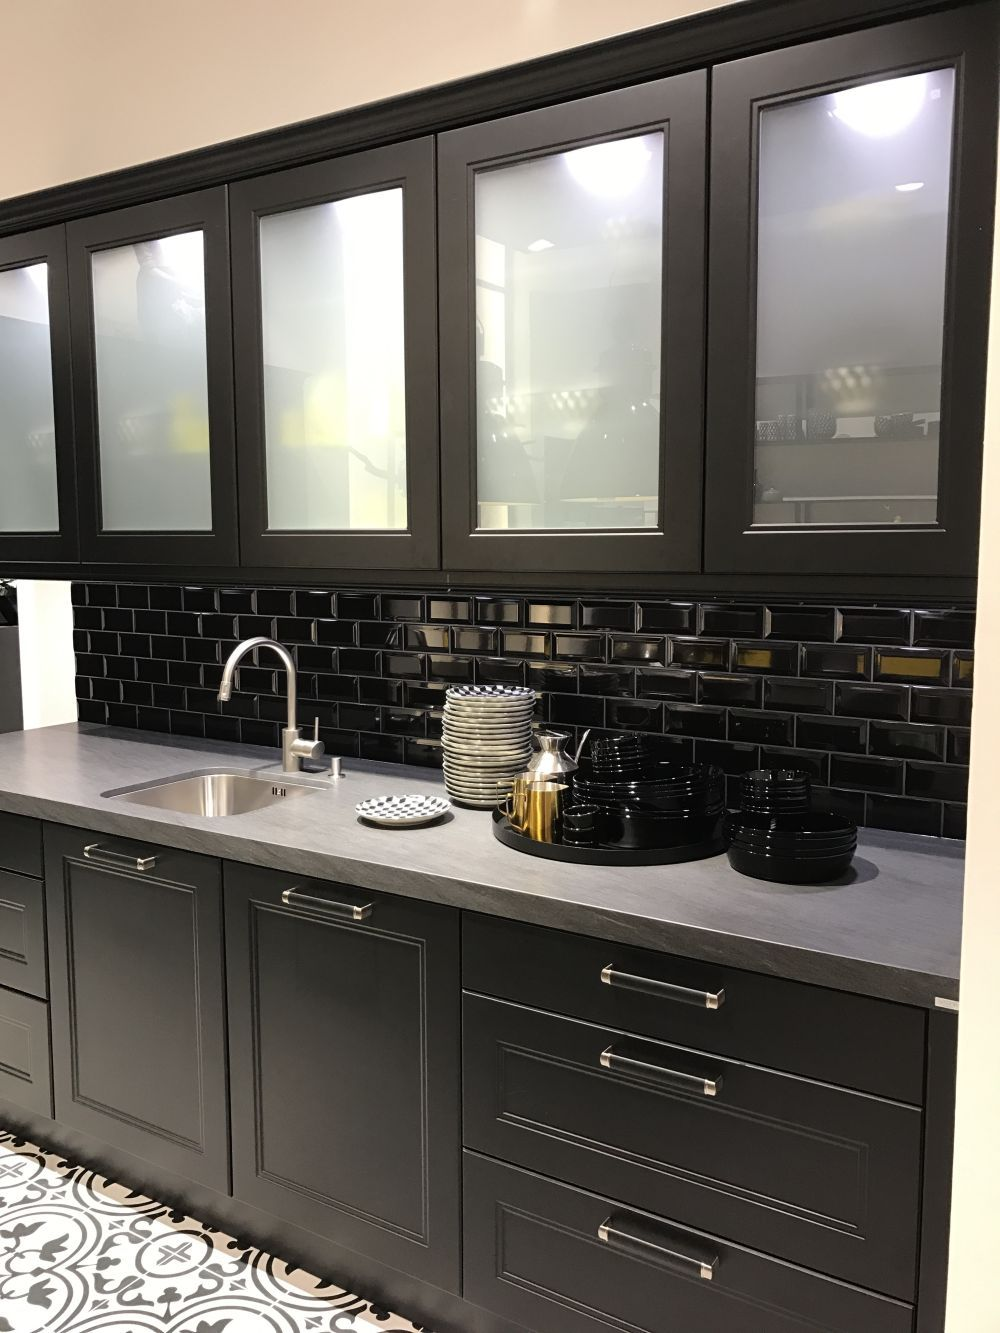 Black Kitchen Cabinets With Subway Tiles And White Frosted Glass Doors Framed Home Decorating Trends Homedit Qualquest